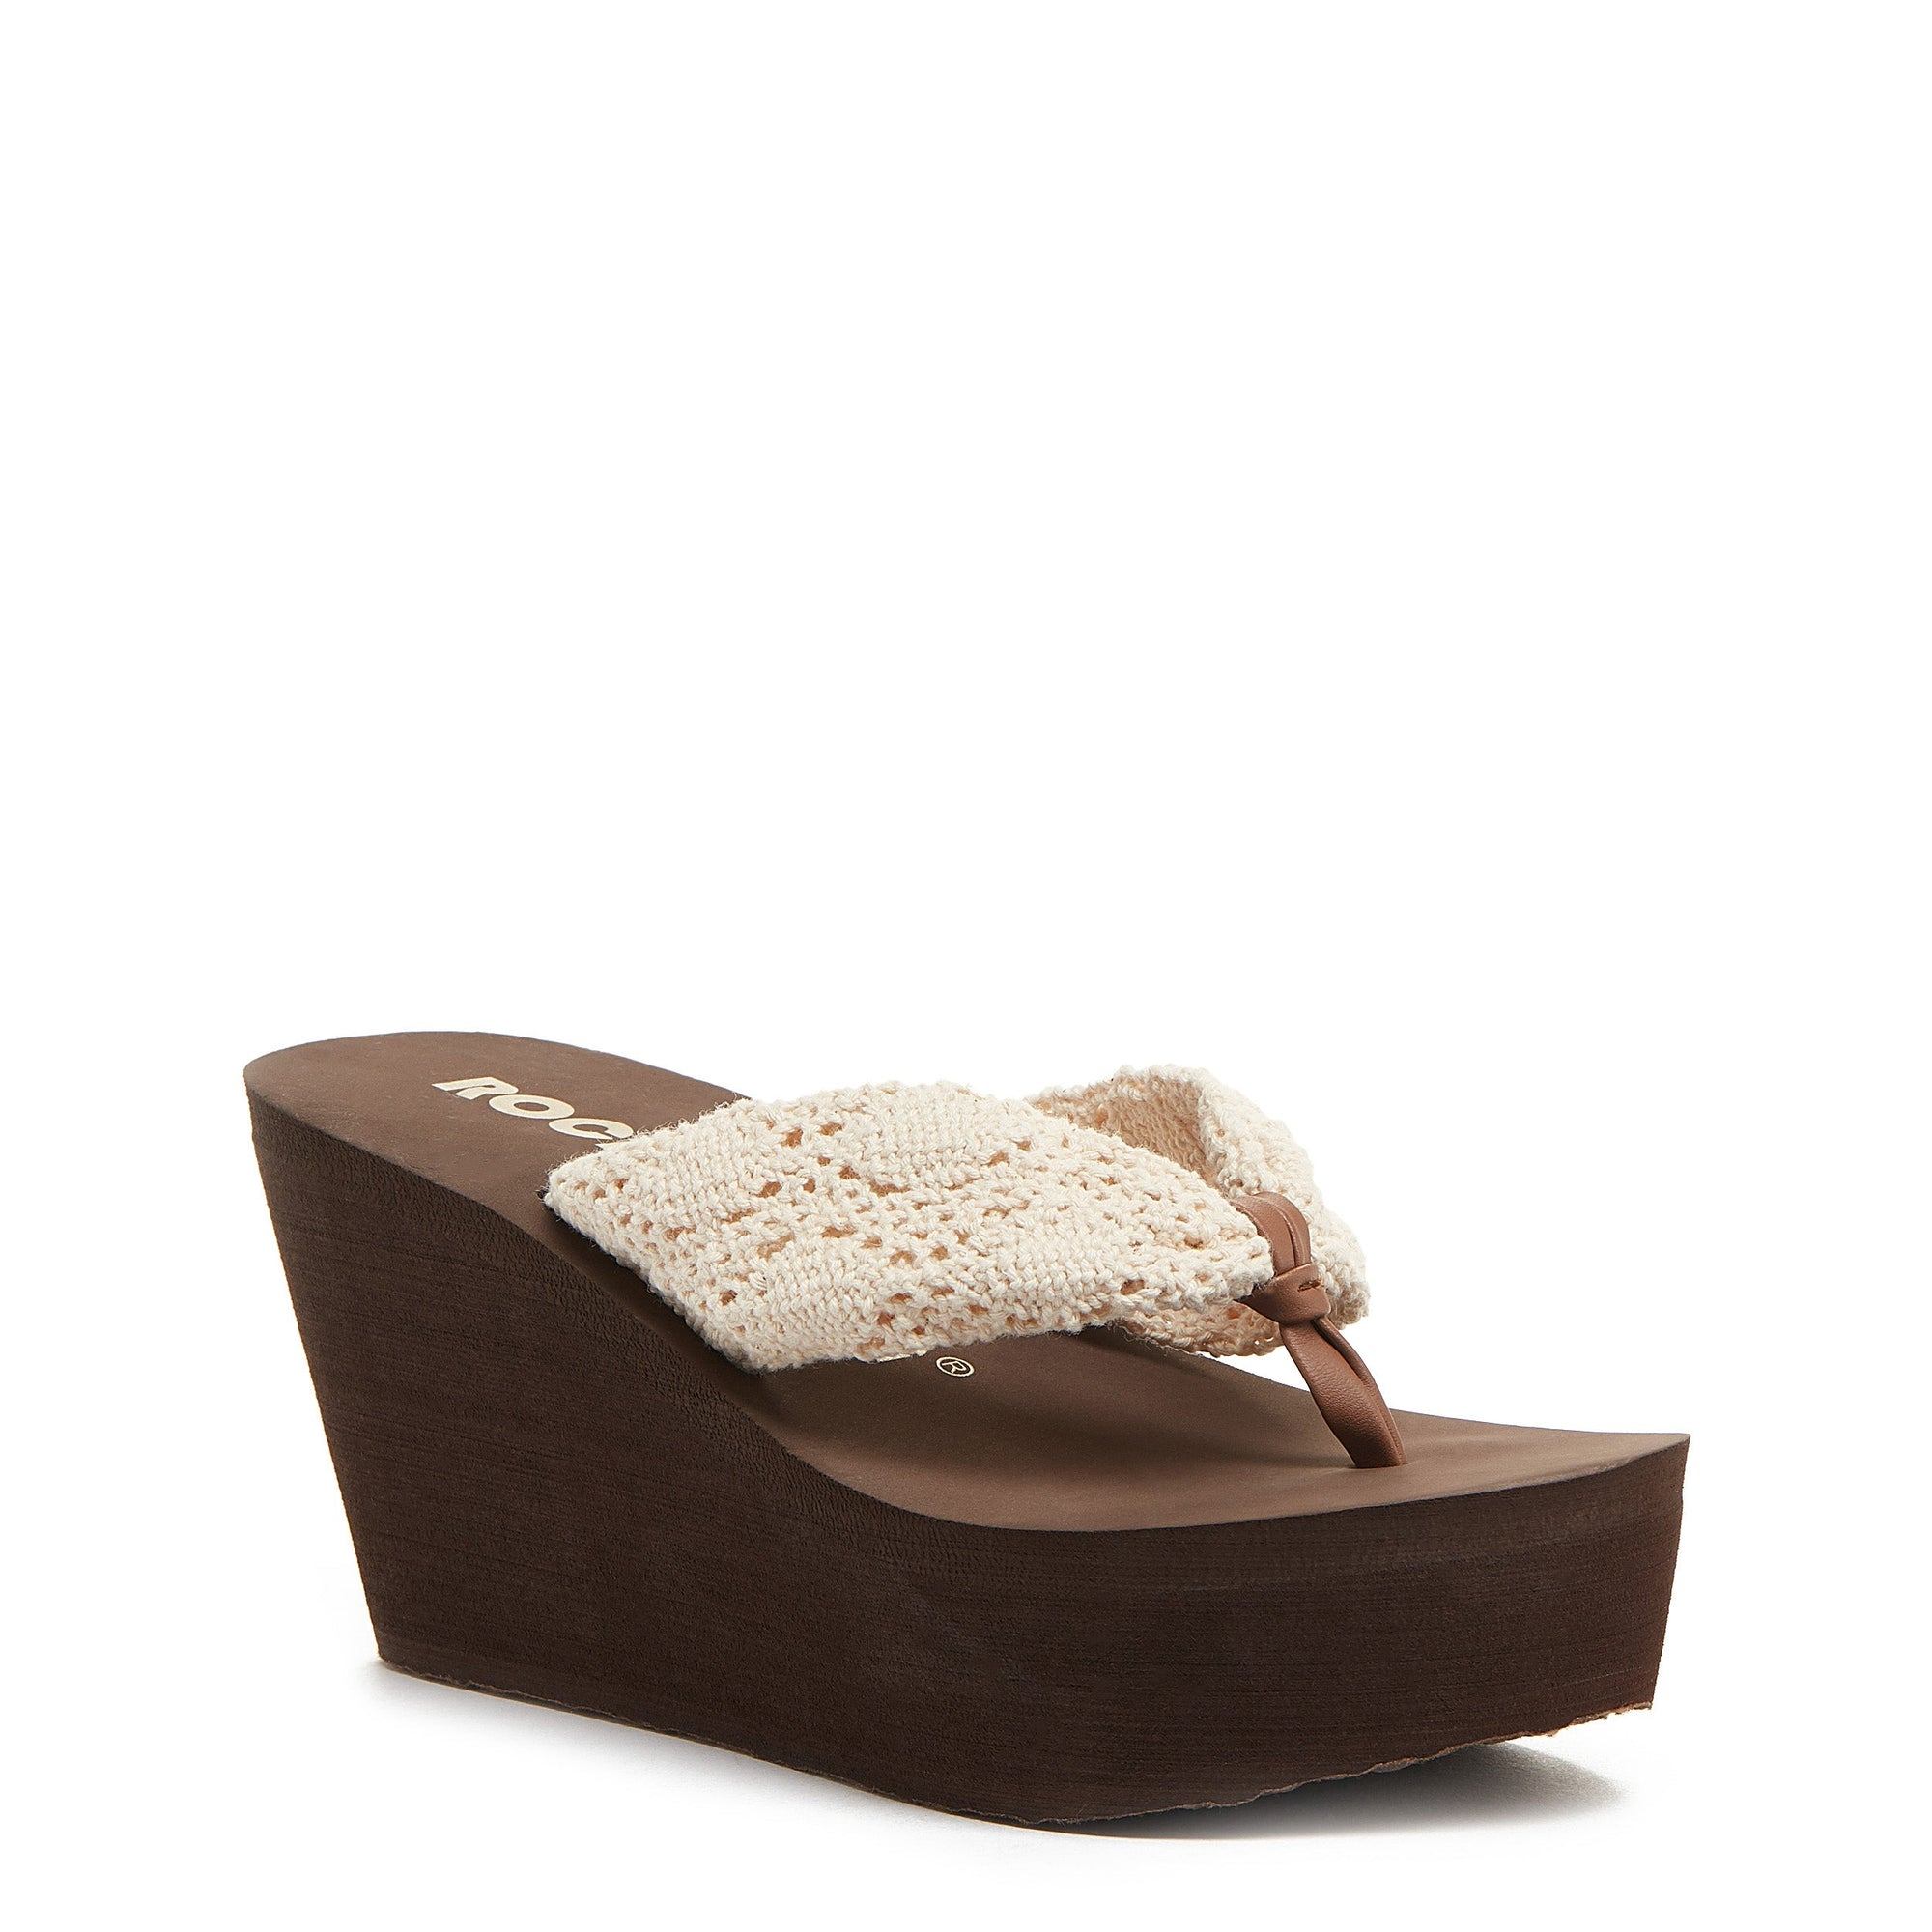 Dock Natural Crochet Sandal